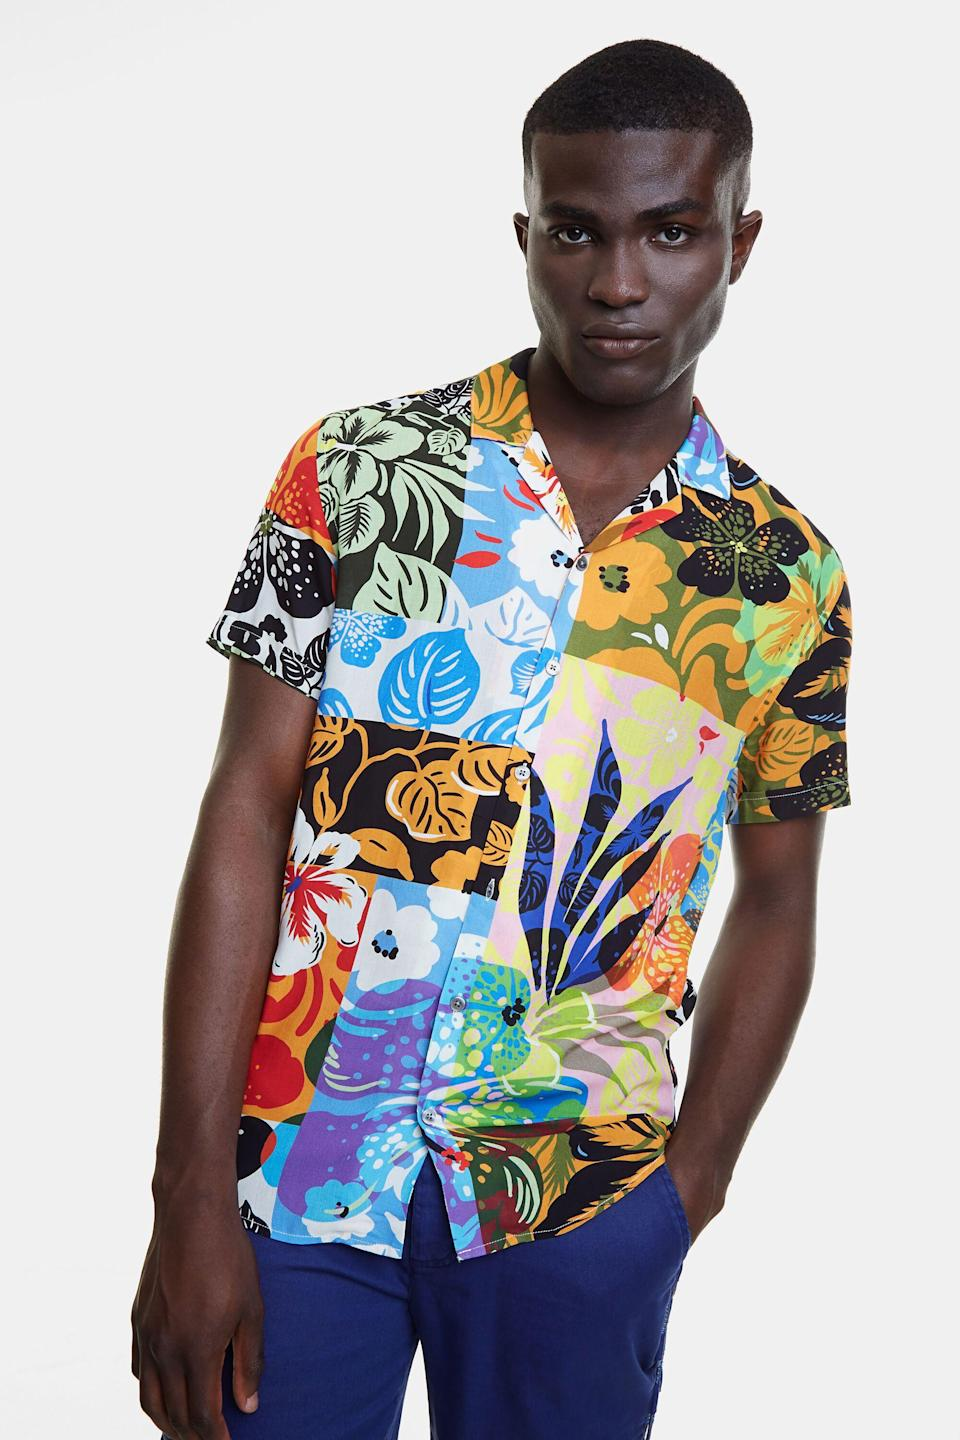 """<p><strong>Desigual</strong></p><p>desigual.com</p><p><strong>$115.95</strong></p><p><a href=""""https://go.redirectingat.com?id=74968X1596630&url=https%3A%2F%2Fwww.desigual.com%2Fen_US%2F20SMCW215054S.html&sref=https%3A%2F%2Fwww.seventeen.com%2Flife%2Ffriends-family%2Fg27570560%2Fgifts-for-dad%2F"""" rel=""""nofollow noopener"""" target=""""_blank"""" data-ylk=""""slk:Shop Now"""" class=""""link rapid-noclick-resp"""">Shop Now</a></p><p>Up his """"dad shirt"""" game with a trendy short sleeve button up. The artsy floral print will make even is oldest pair of <a href=""""https://go.redirectingat.com?id=74968X1596630&url=https%3A%2F%2Fwww.birkenstock.com%2Fus&sref=https%3A%2F%2Fwww.seventeen.com%2Flife%2Ffriends-family%2Fg27570560%2Fgifts-for-dad%2F"""" rel=""""nofollow noopener"""" target=""""_blank"""" data-ylk=""""slk:Birkenstocks"""" class=""""link rapid-noclick-resp"""">Birkenstocks</a> look cool.</p>"""